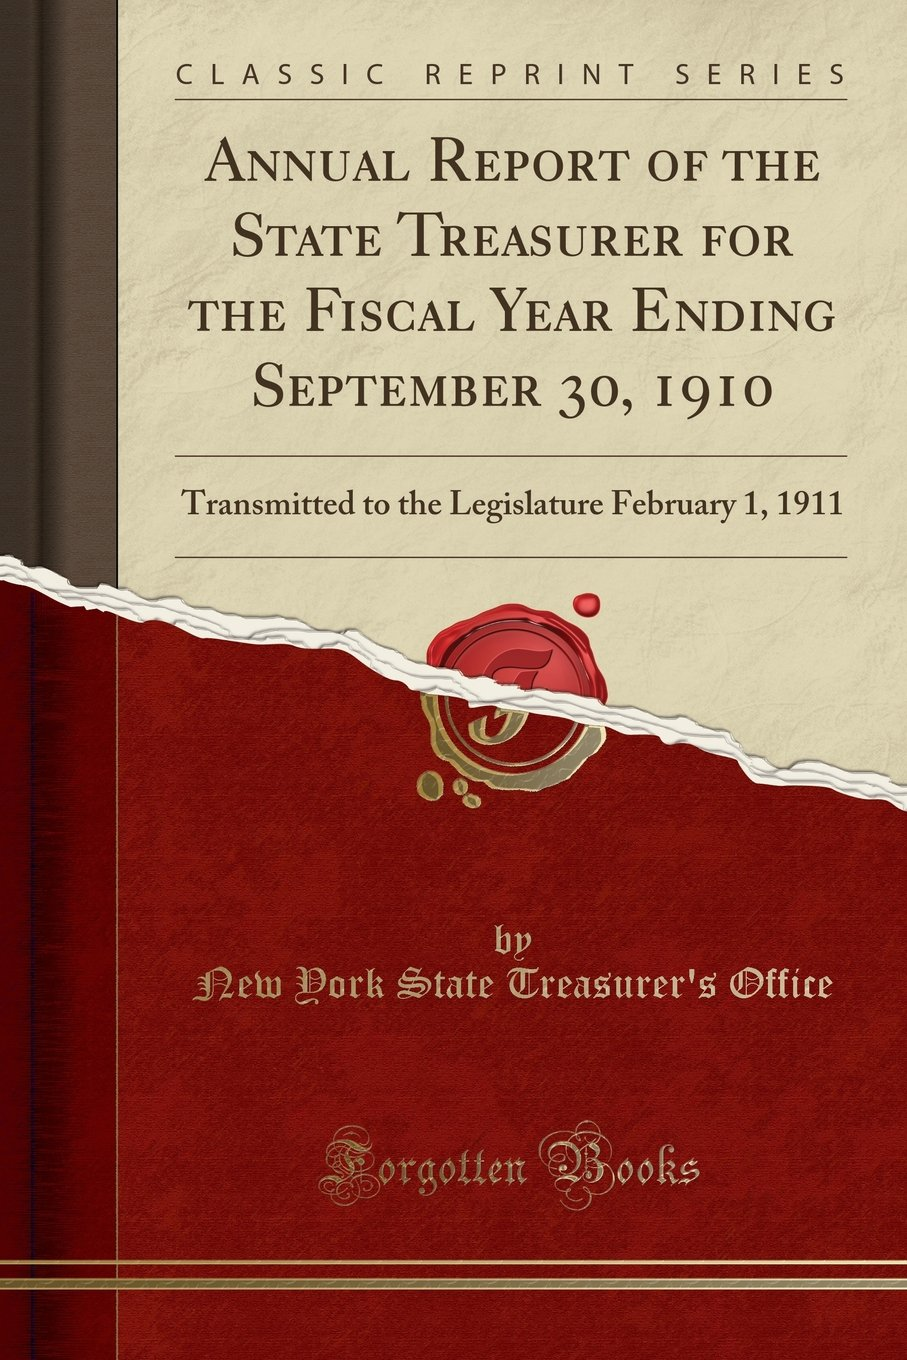 Annual Report of the State Treasurer for the Fiscal Year Ending September 30, 1910: Transmitted to the Legislature February 1, 1911 (Classic Reprint) ebook